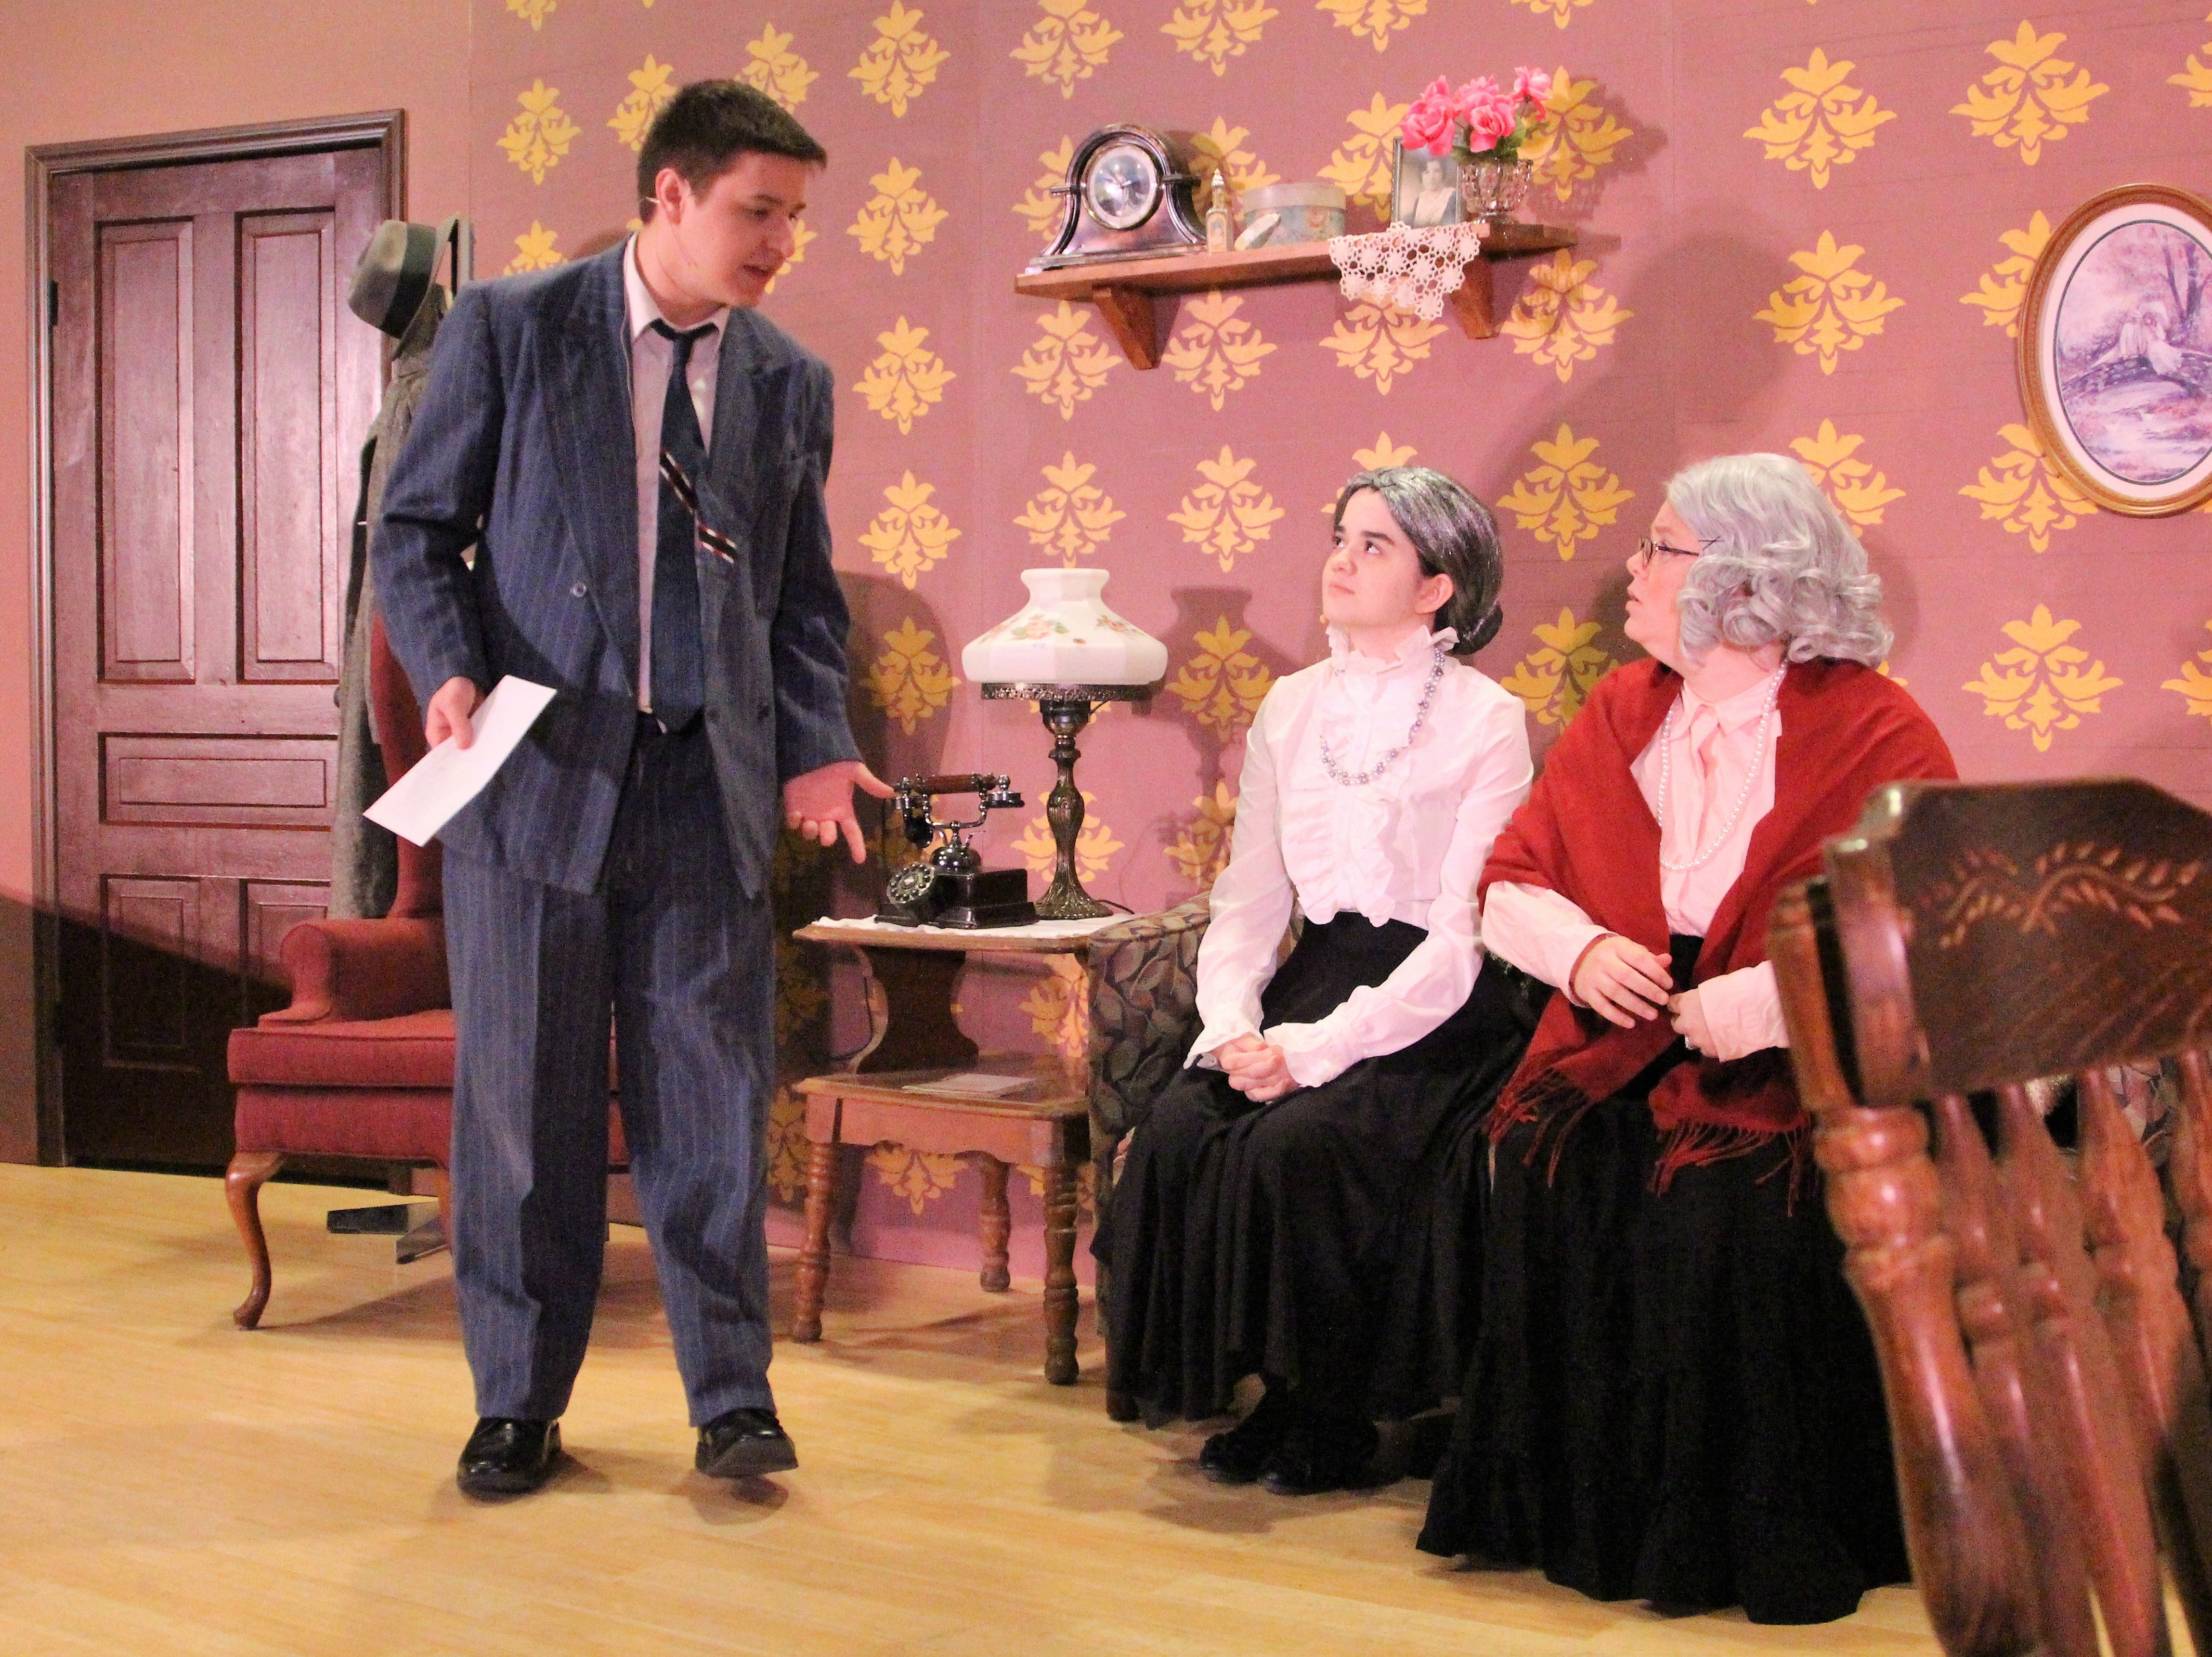 """Lead Mortimer Brewster, played by Darren Sites talks to his two aging aunts while debating whether to go through with his recent promise to marry the woman he loves. The student-led production of """"Arsenic & Old Lace"""" is part of an effort by the college's office of student life to bring more plays to the campus's stage."""